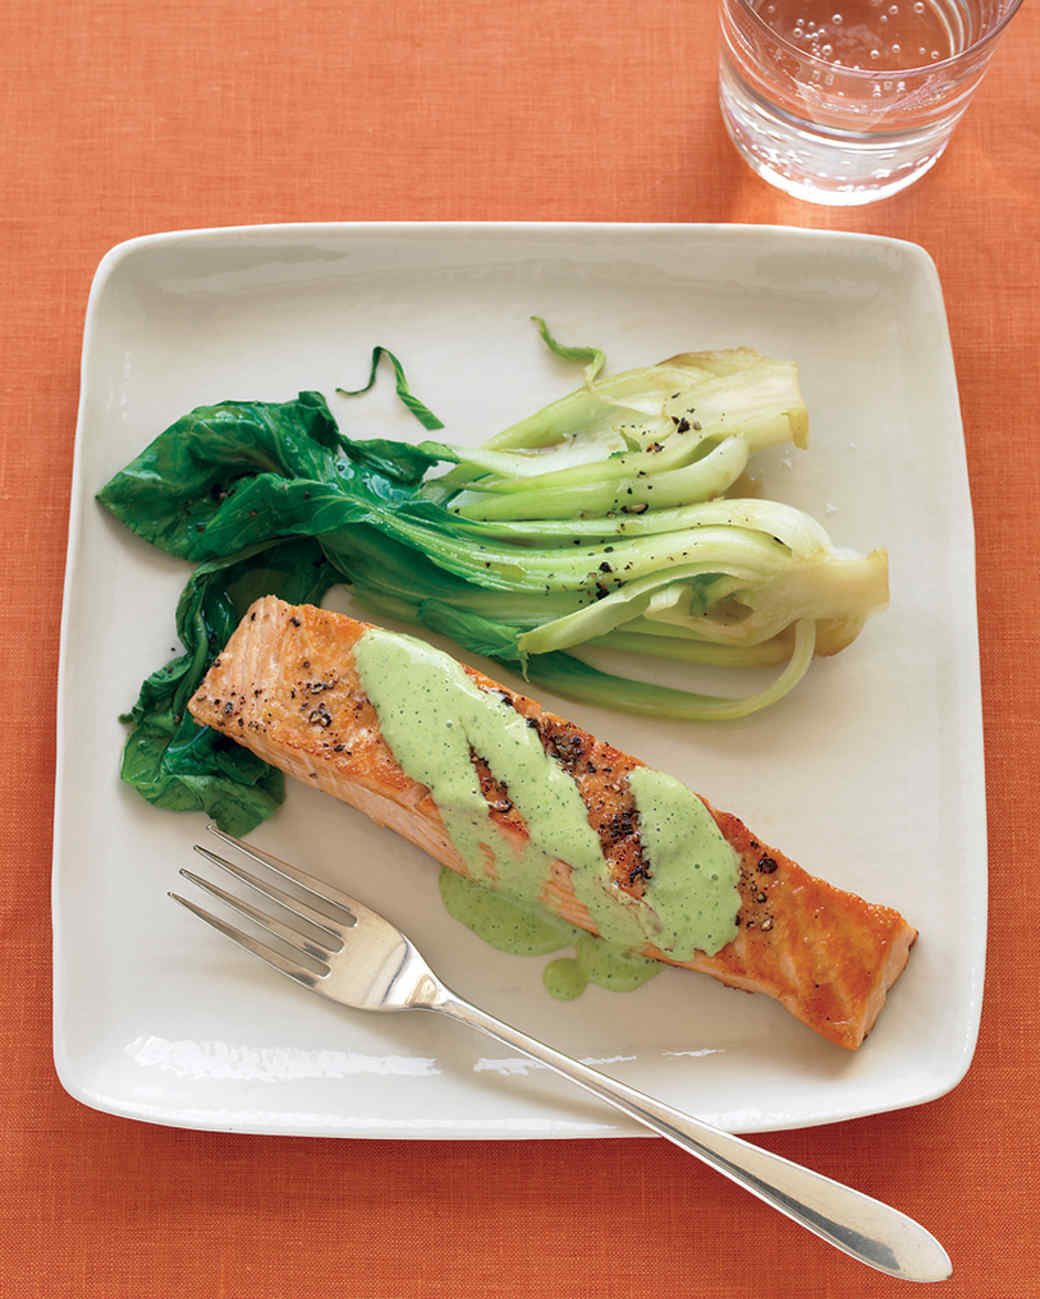 Wasabi Sauce For Fish Salmon With Wasabi Sauce And